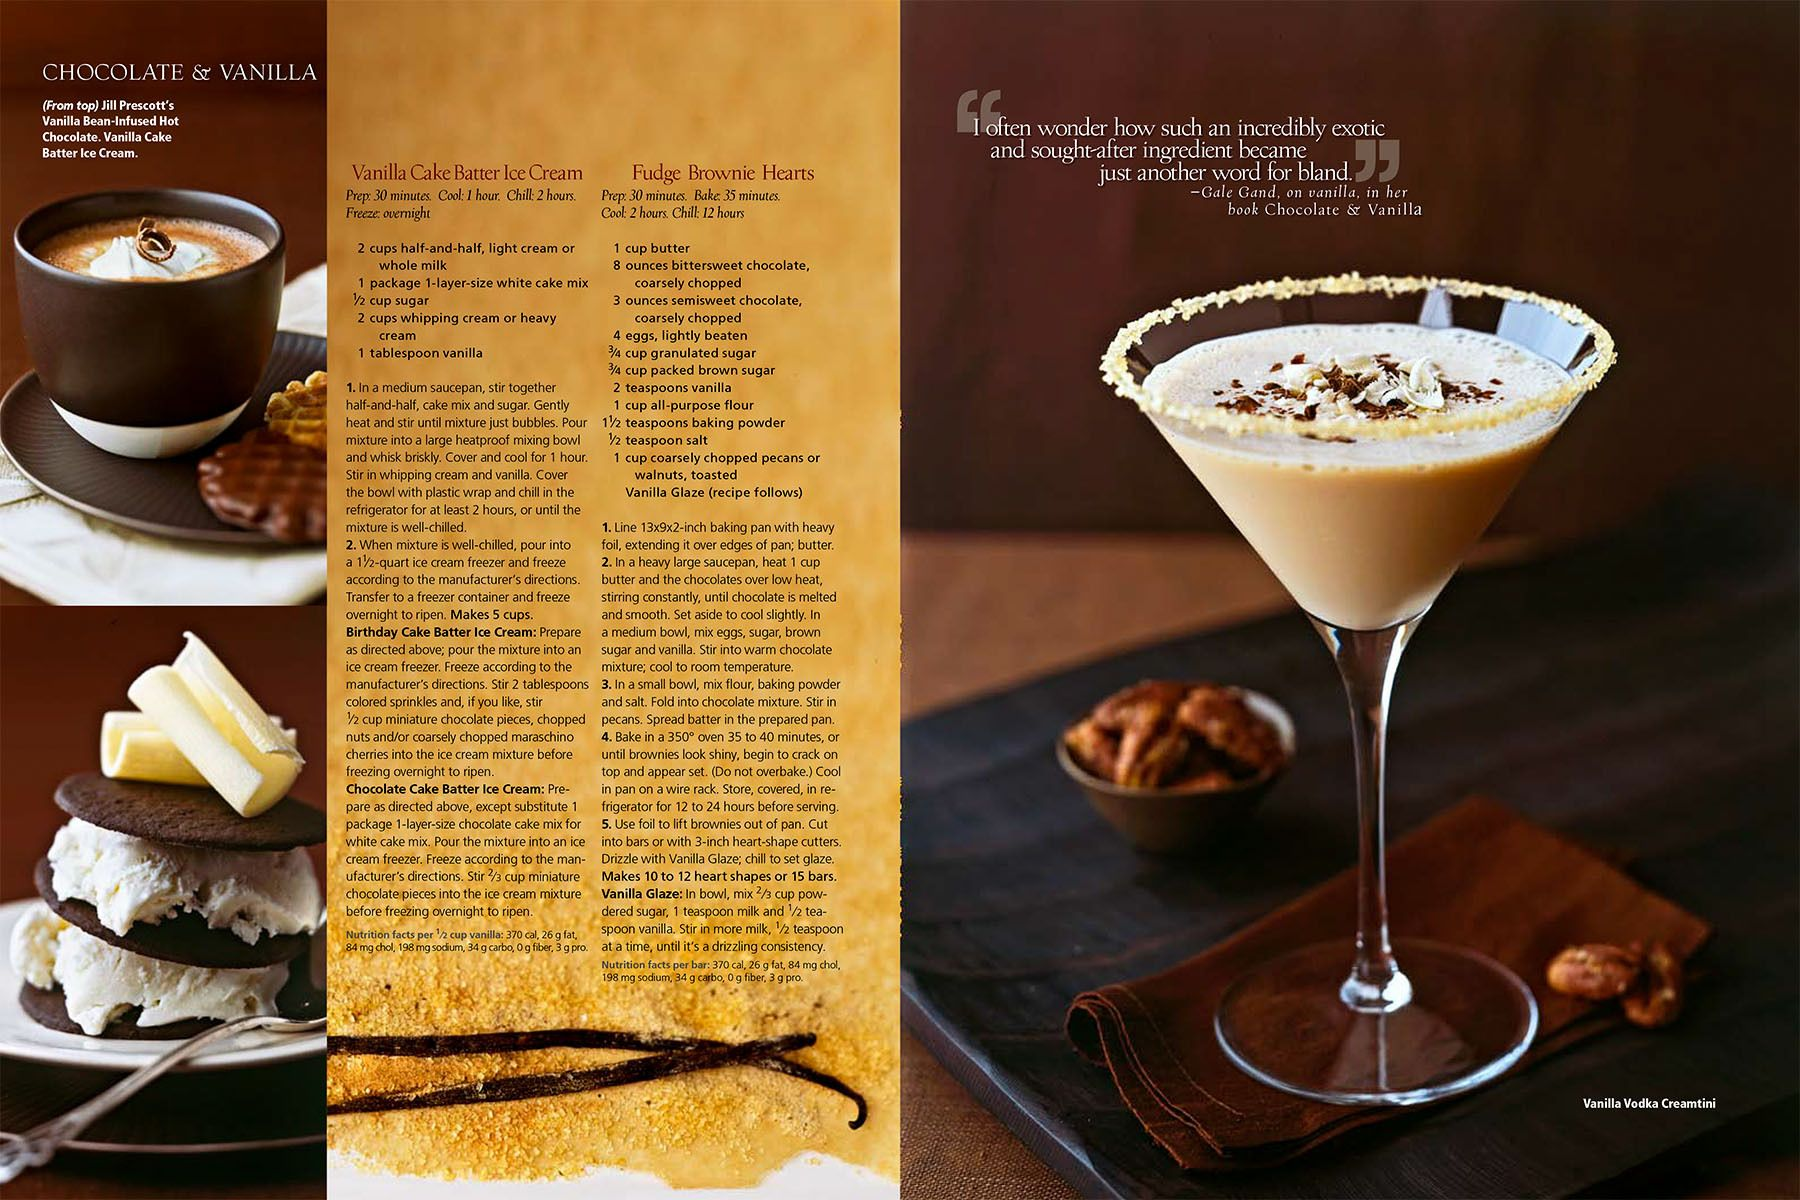 Chocolate martini, hot cocoa, chocolate ice cream cookies for  Chocolate & Vanilla story for Midwest Living Magazinewww.rkjacobs.comTop Food Photographer New York Seattle PortlandRobert Jacobs Photography ©2013